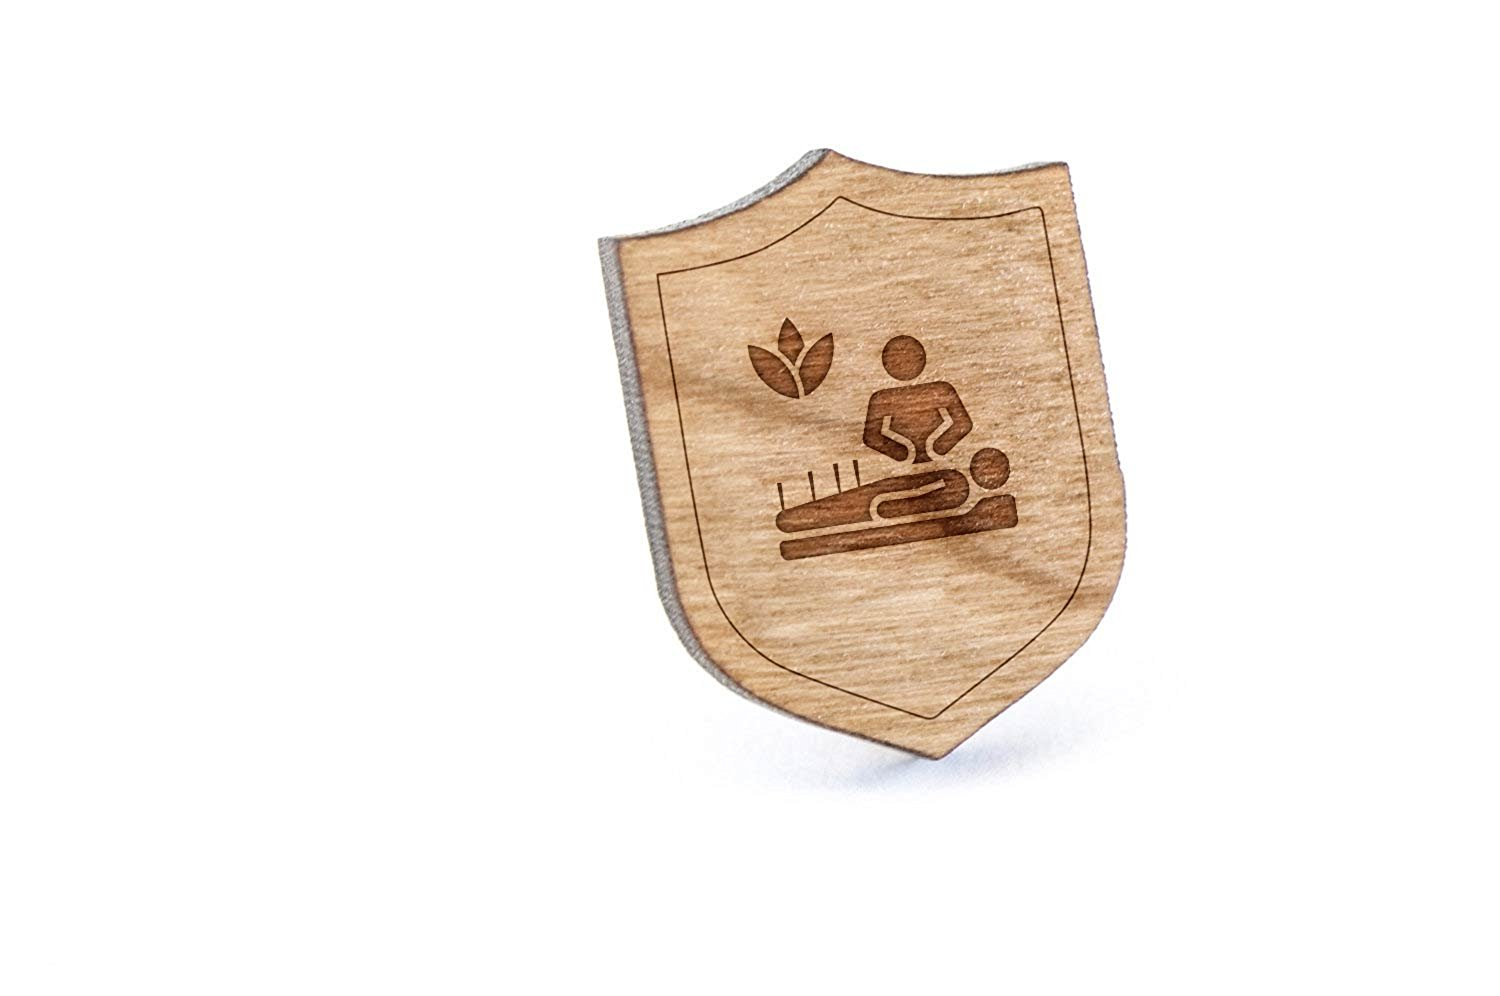 Wooden Accessories Company Wooden Tie Clips with Laser Engraved Keyhole Design Cherry Wood Tie Bar Engraved in The USA